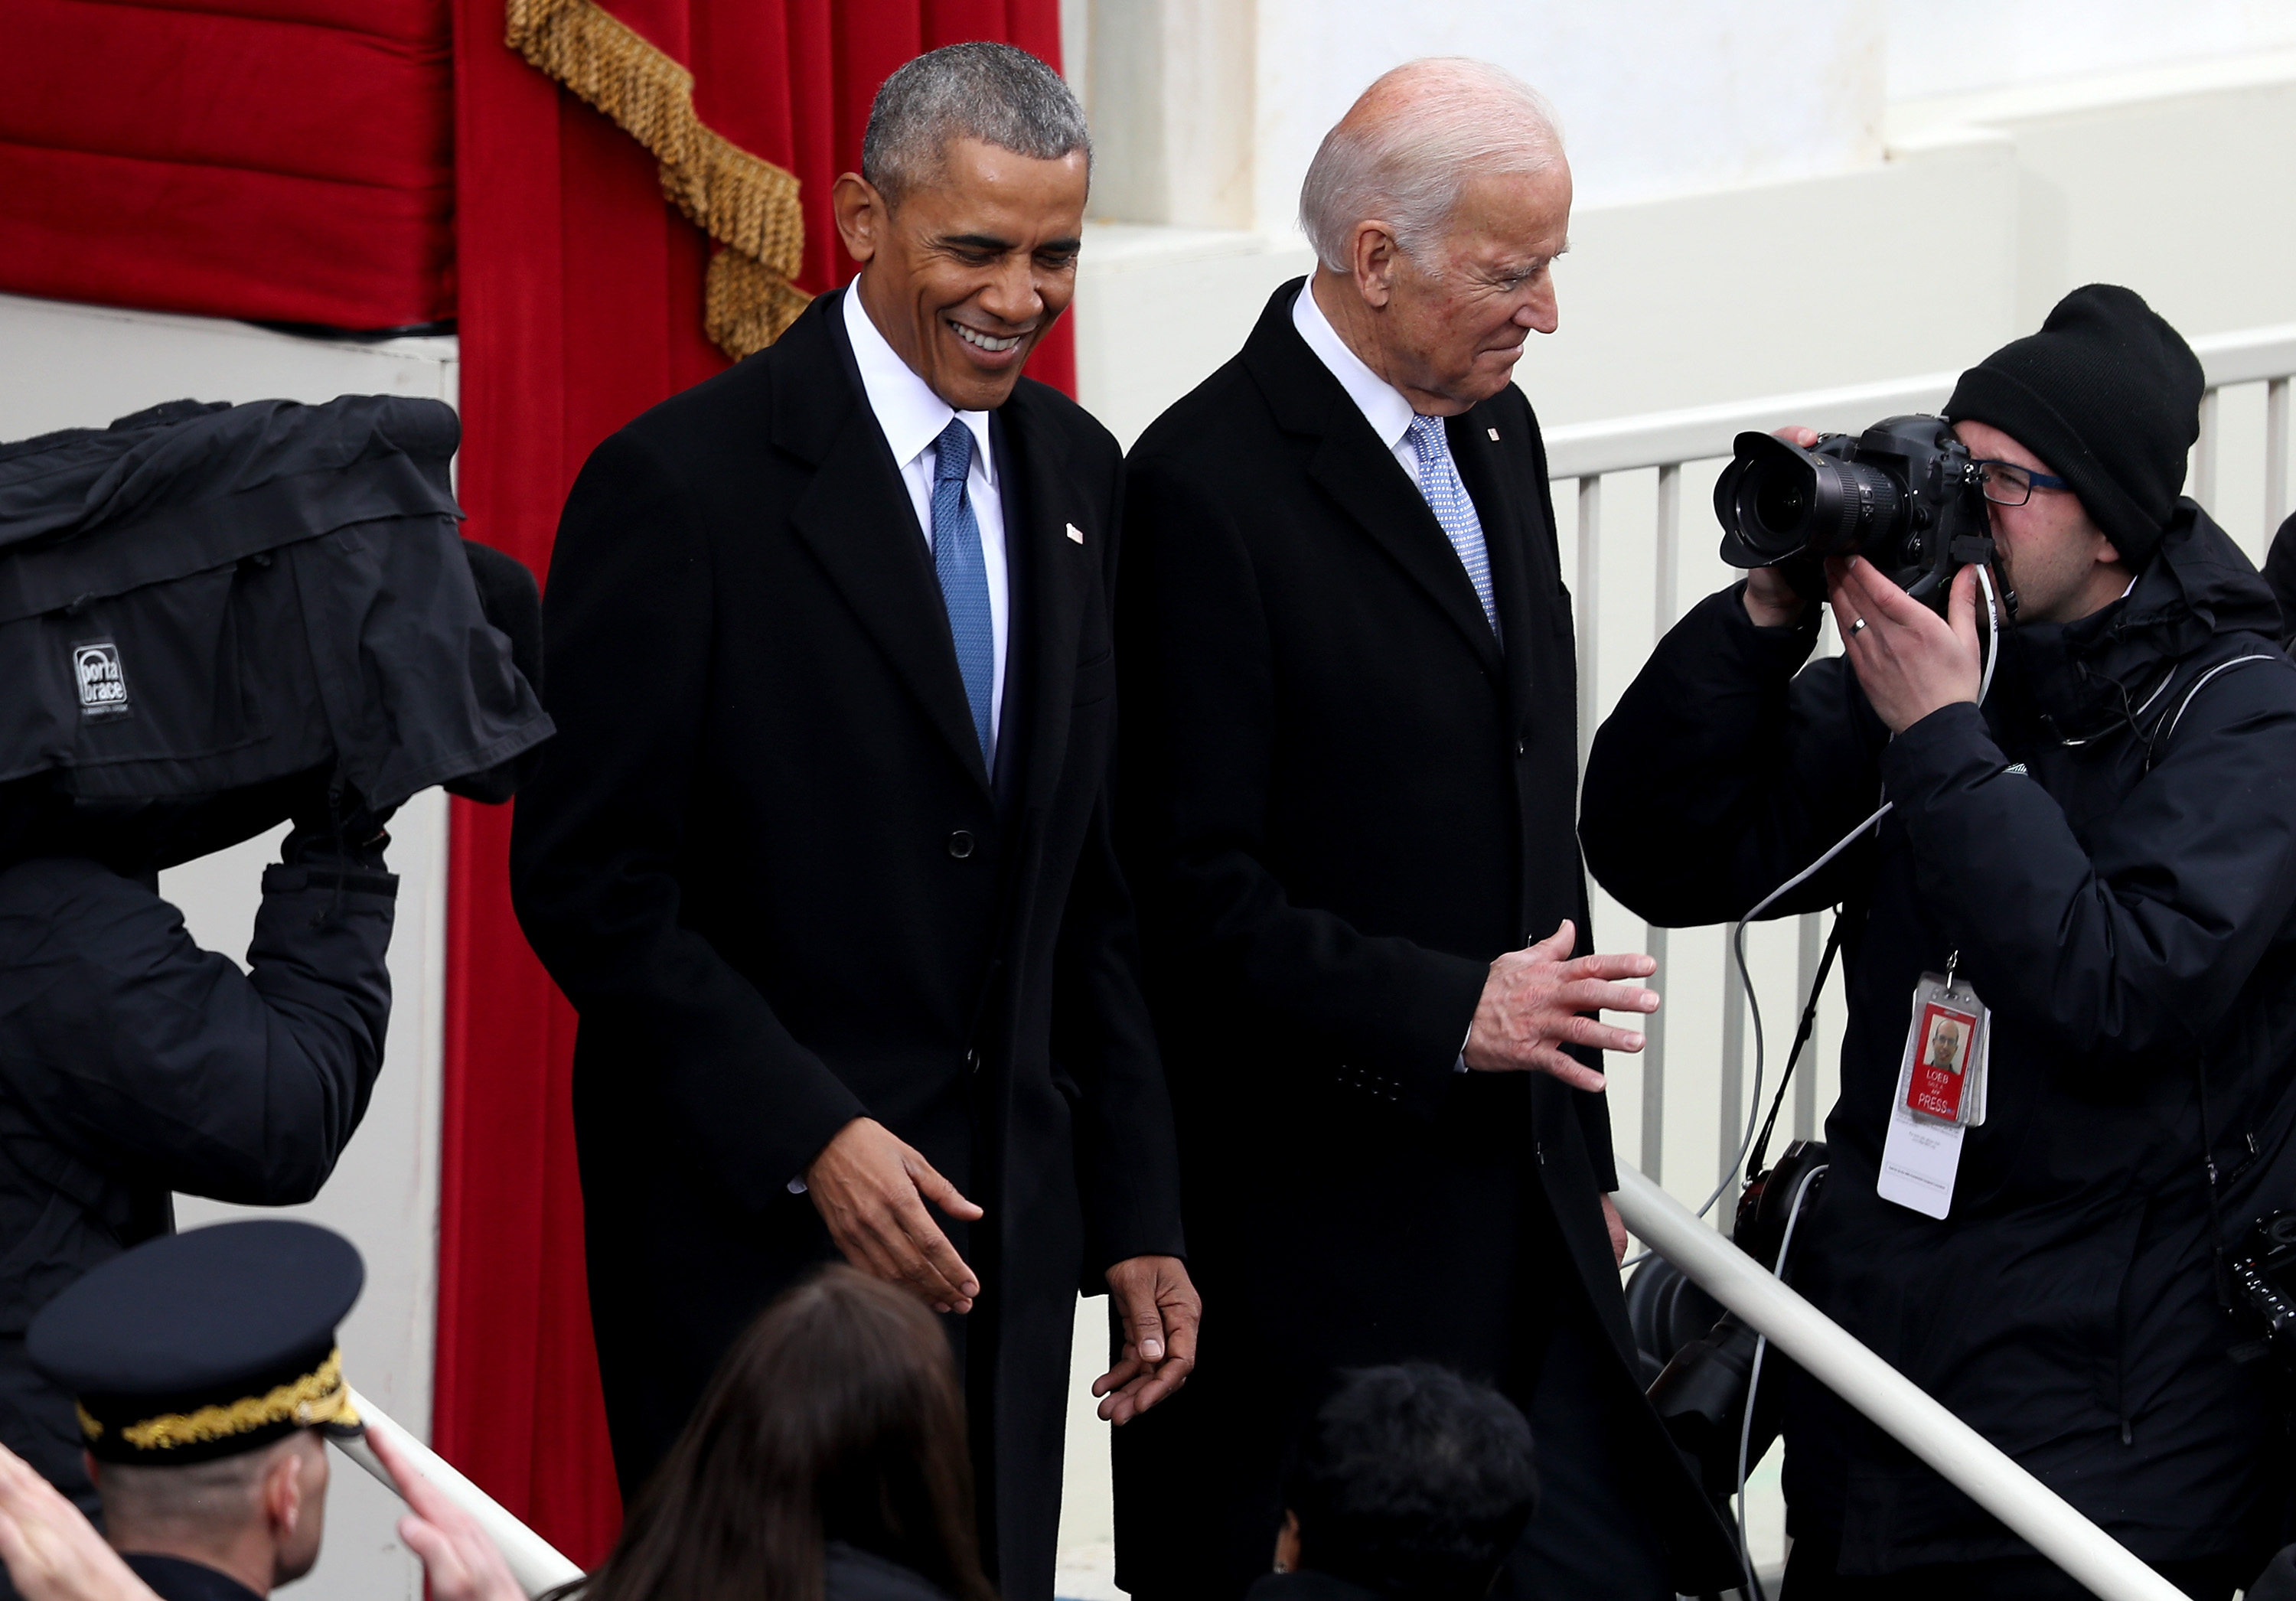 WASHINGTON, DC - JANUARY 20: President Barack Obama and Vice President Joe Biden arrive on the West Front of the U.S. Capitol on January 20, 2017 in Washington, DC. In today's inauguration ceremony Donald J. Trump becomes the 45th president of the United States. (Photo by Joe Raedle/Getty Images)